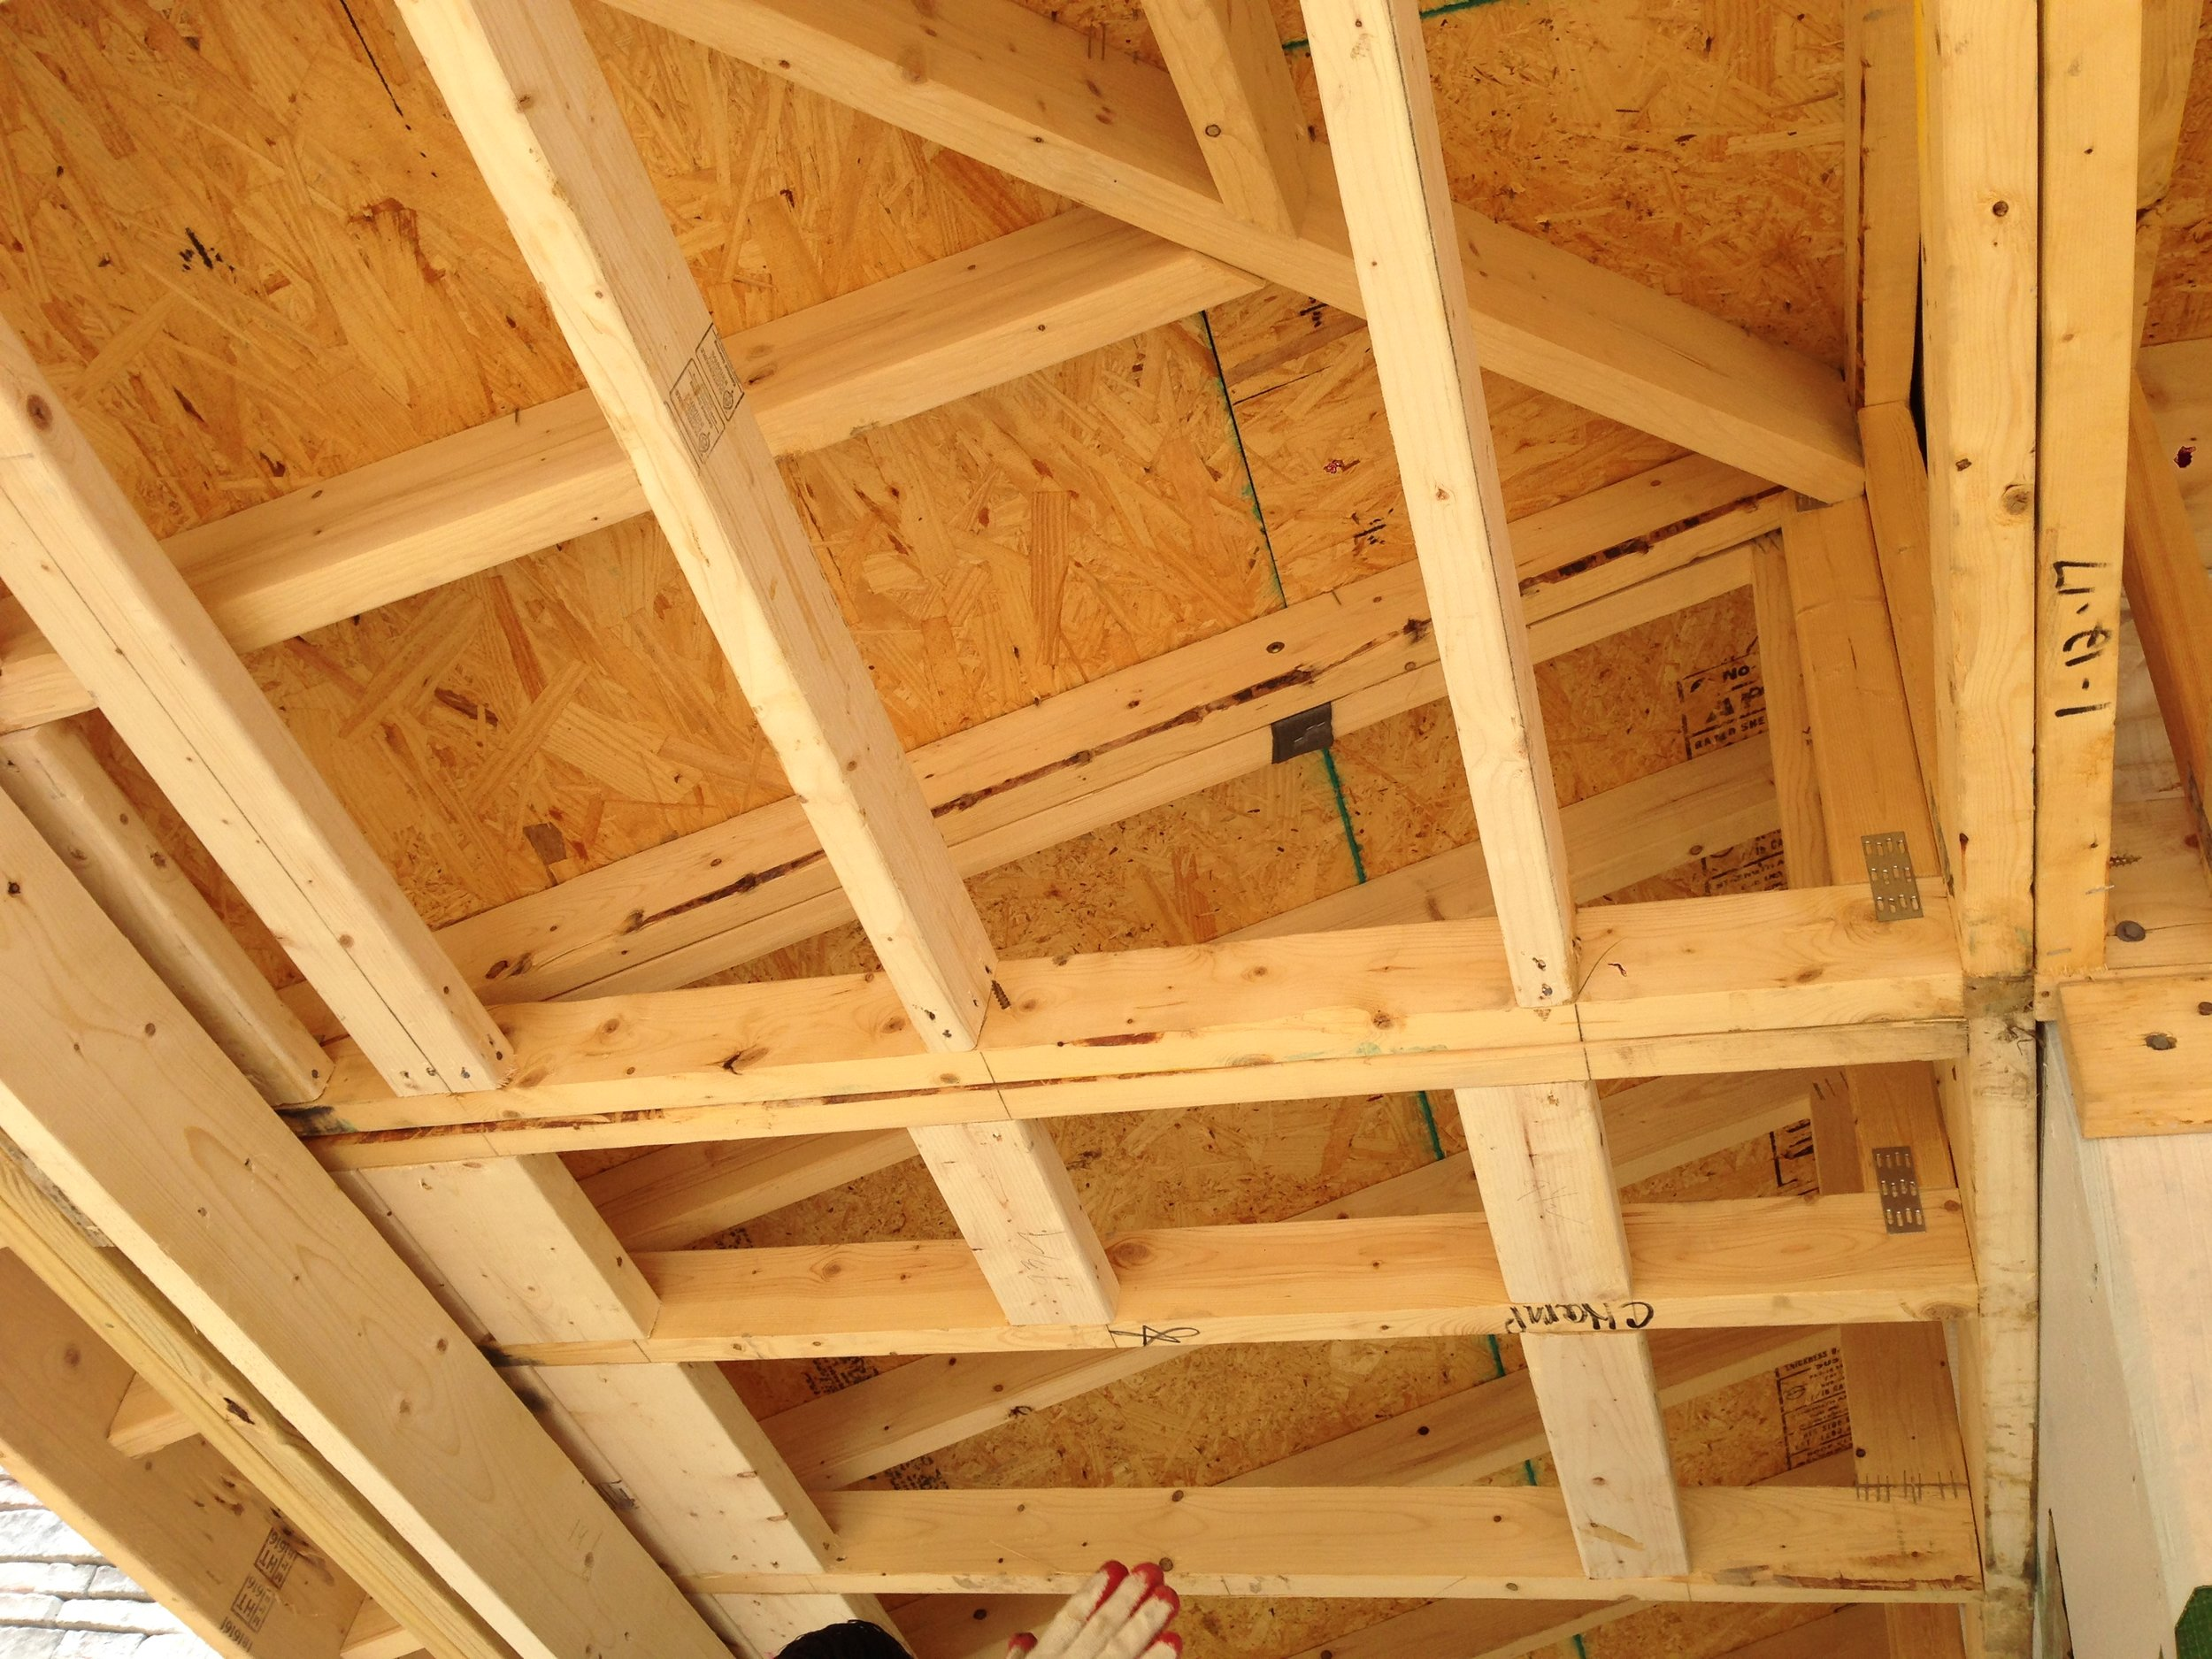 Jose installing some blocking in between the rafters.